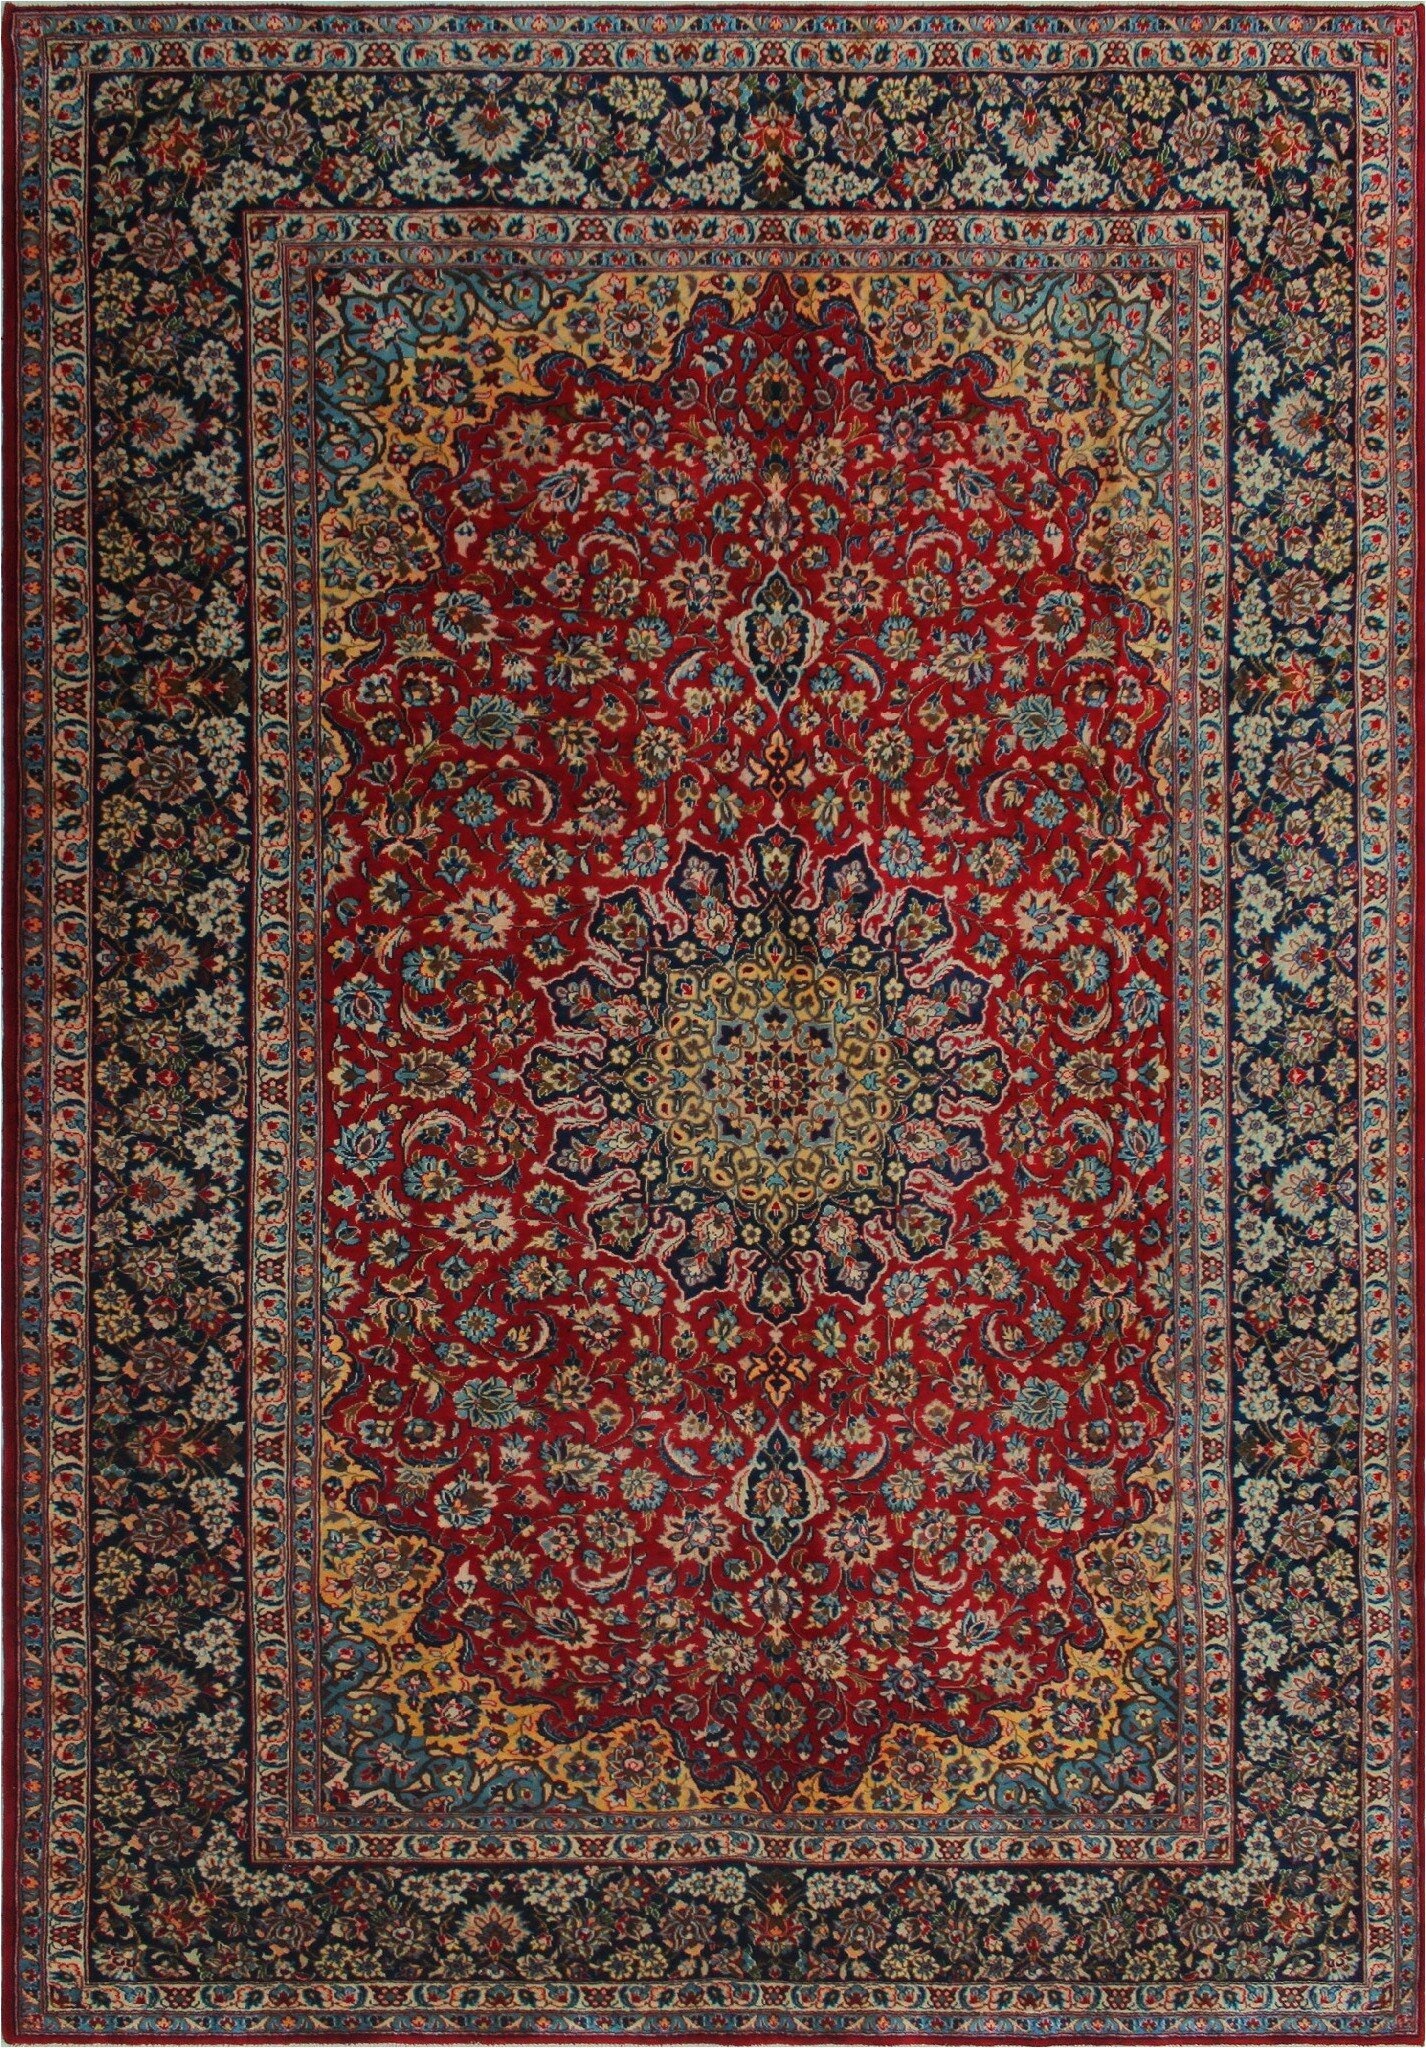 bloomsbury market one of a kind eitzen hand knotted traditional style redblue 97 x 135 wool area rug w